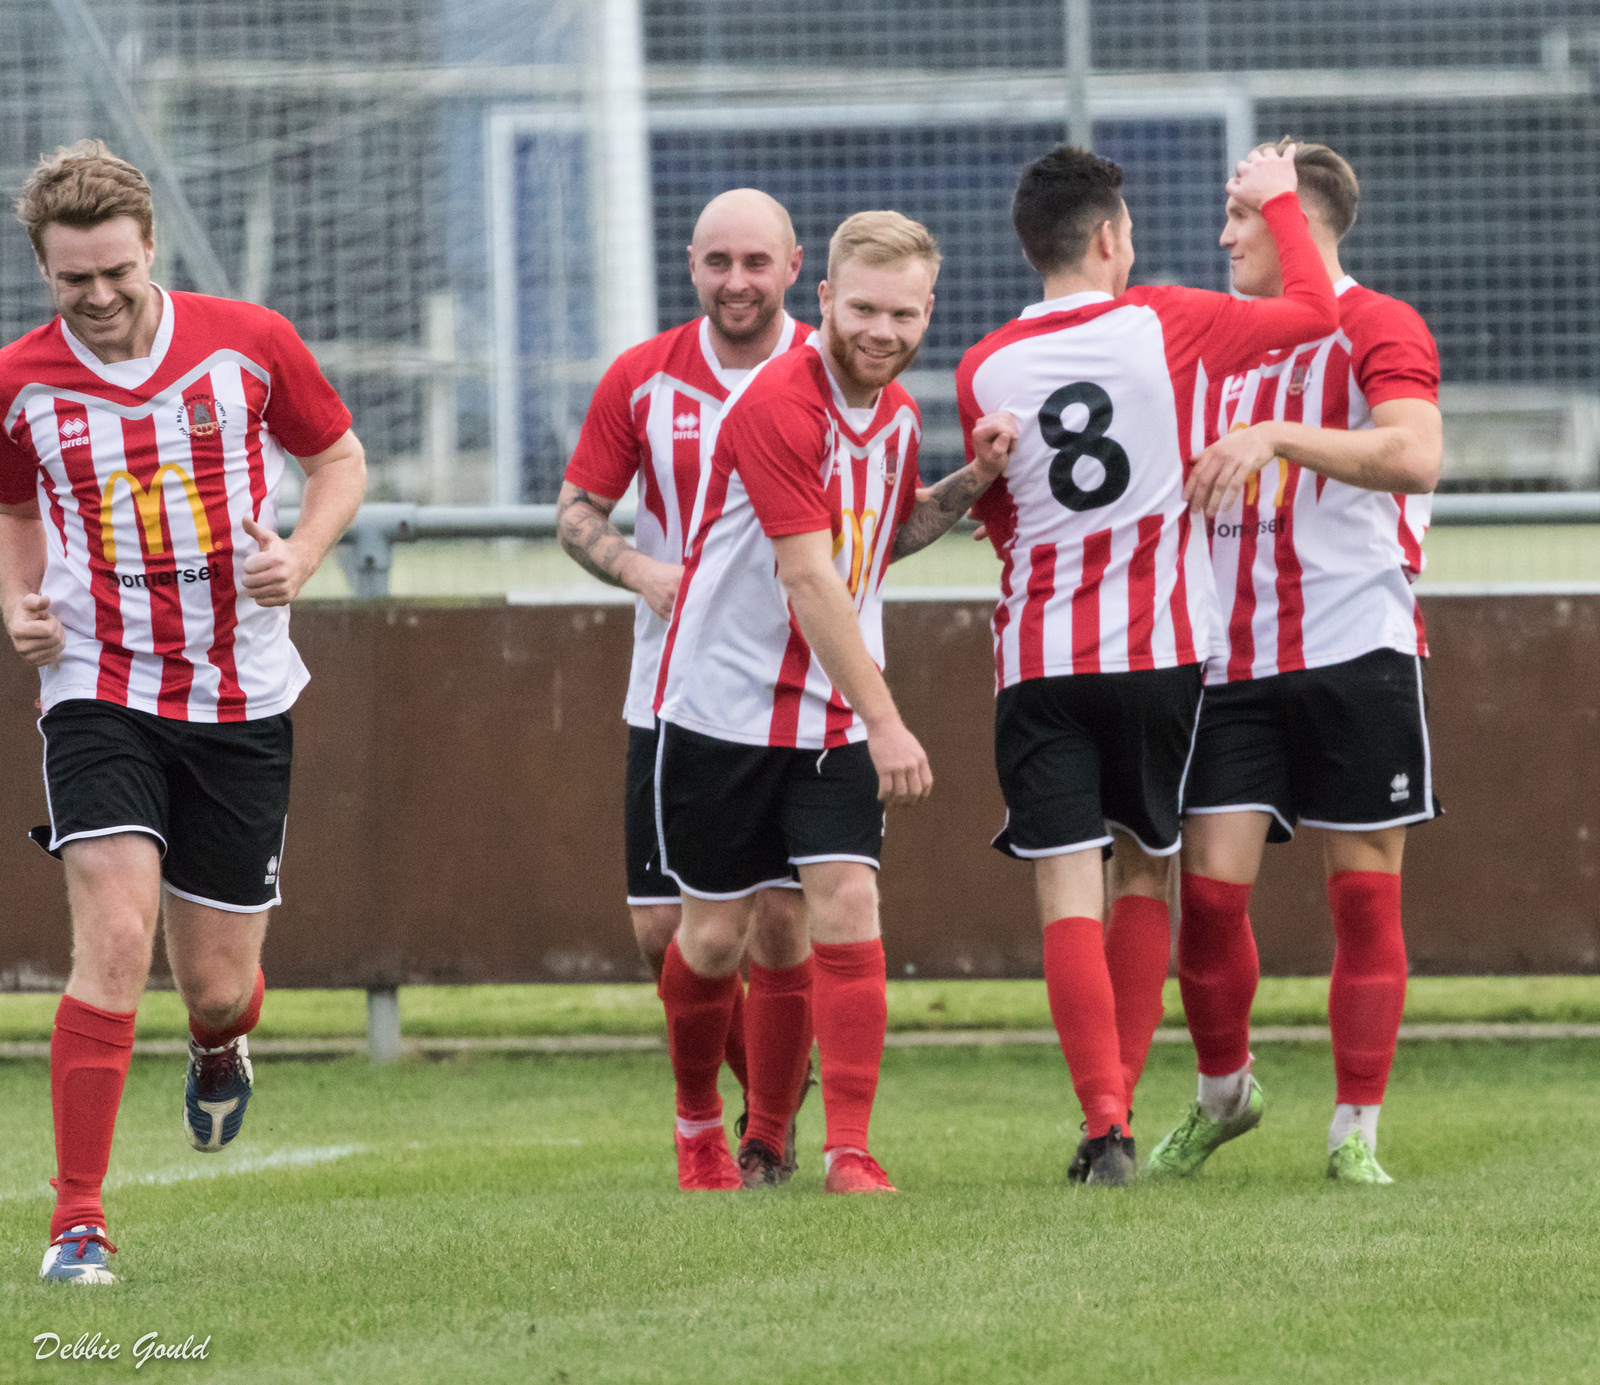 INCENTIVE: Bridgwater Town will have home advantage in the next round should they overcome Melksham tonight (Monday). Pic: Debbie Gould